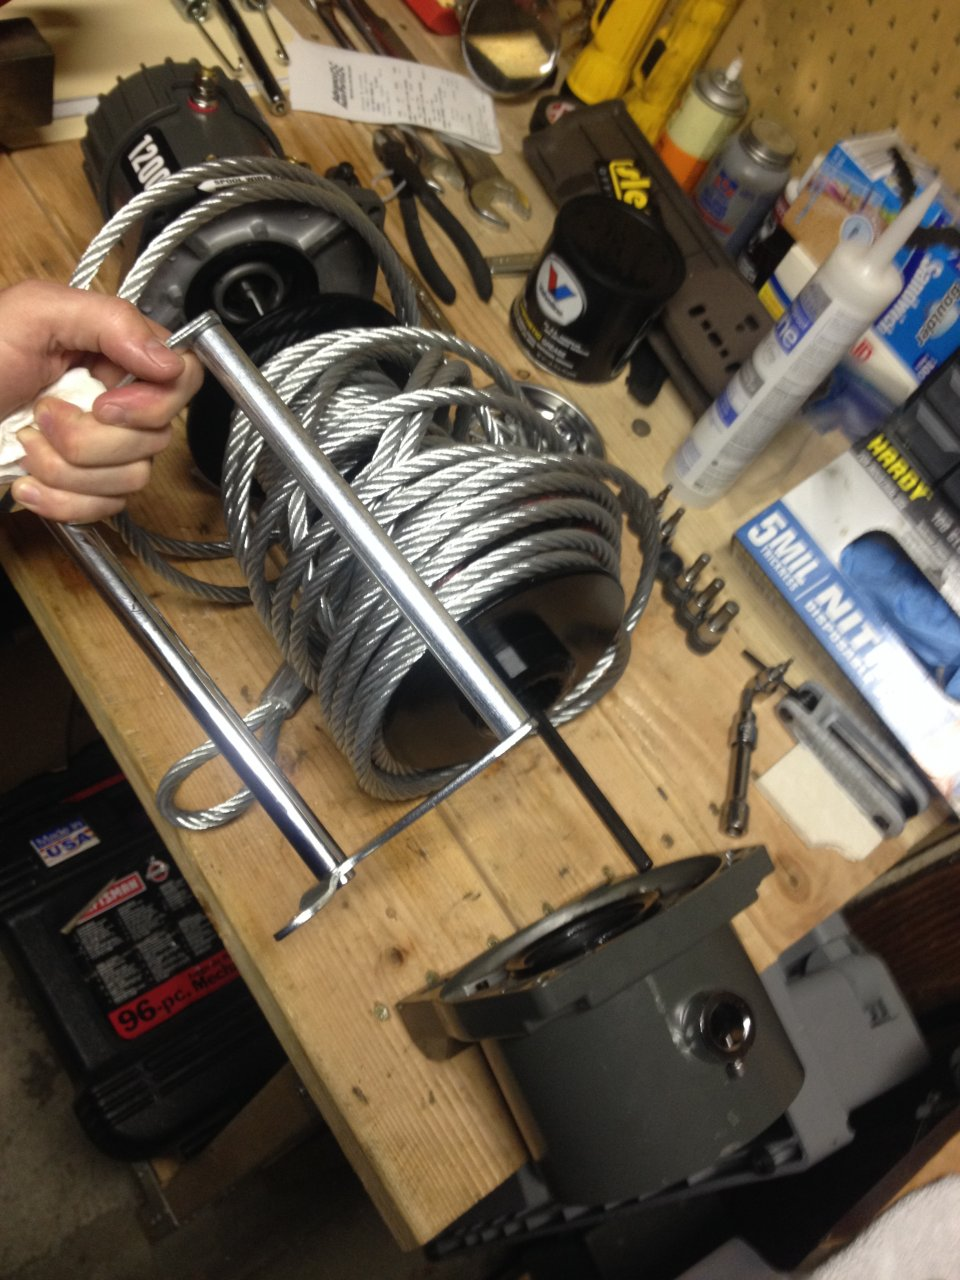 HF Badlands 12 k DIY winch hack waterproof upgrade mod | IH8MUD Forum